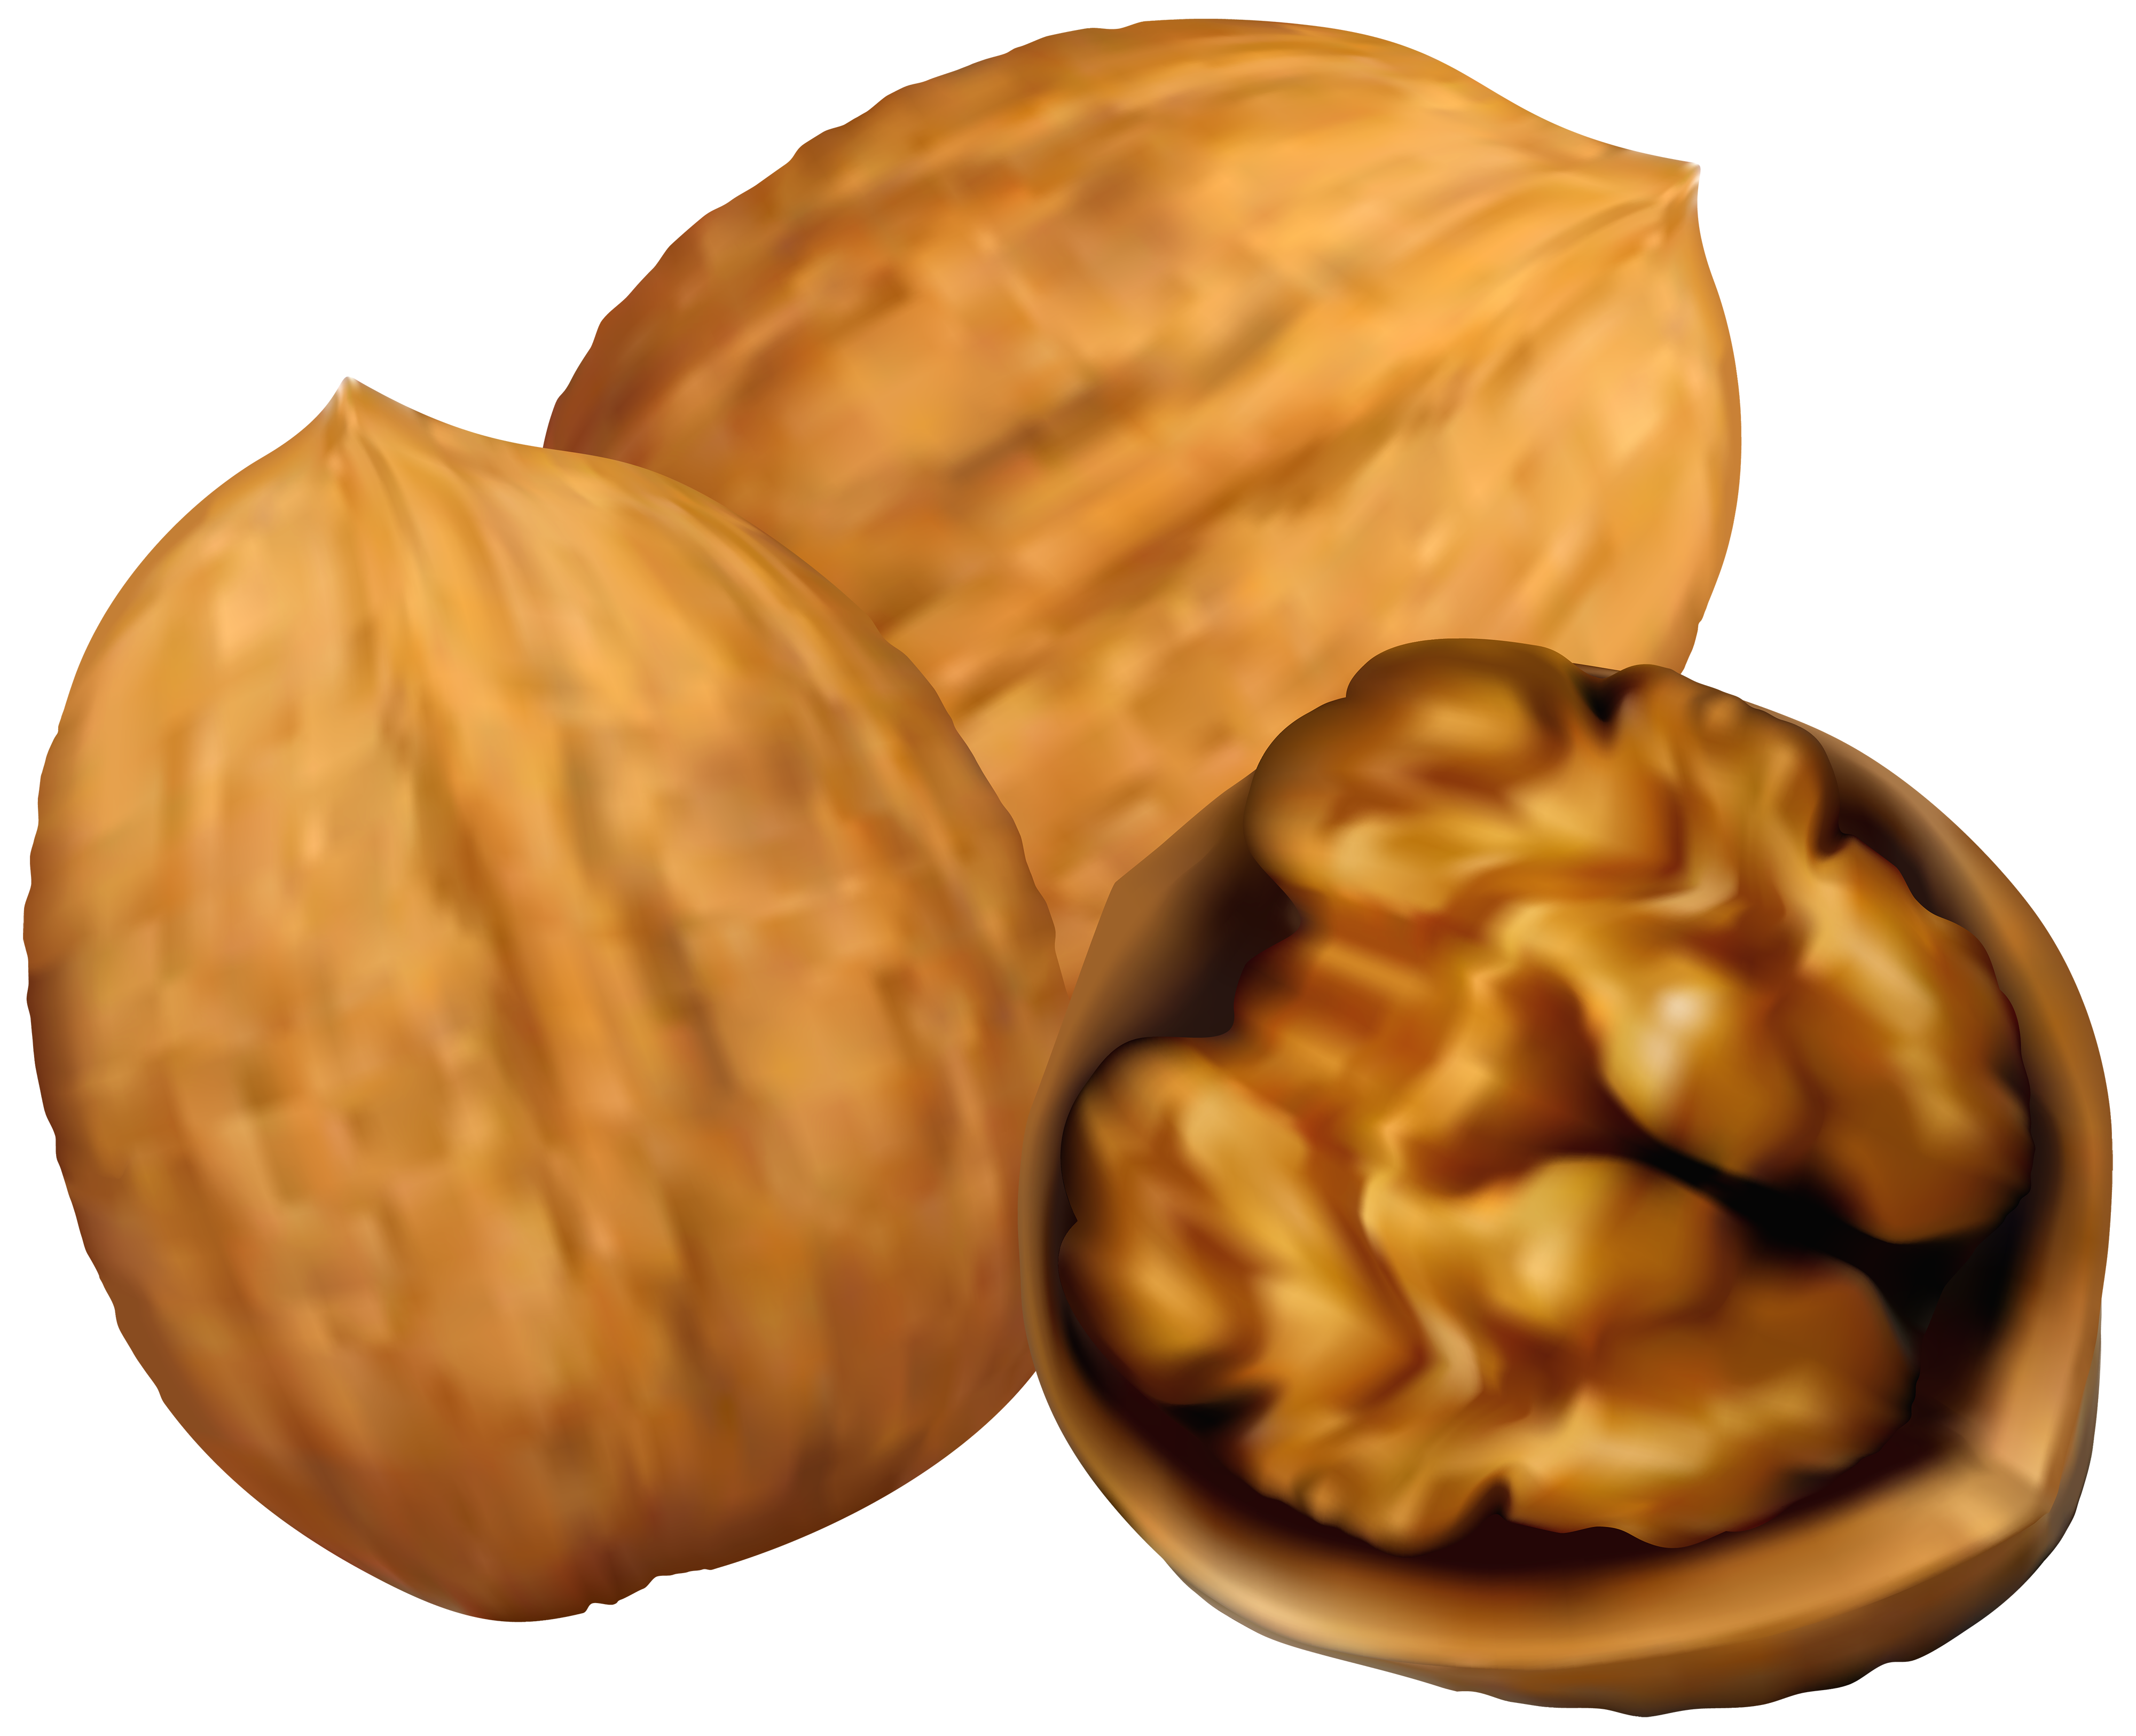 png free Nuts clipart. Walnuts png clip art.